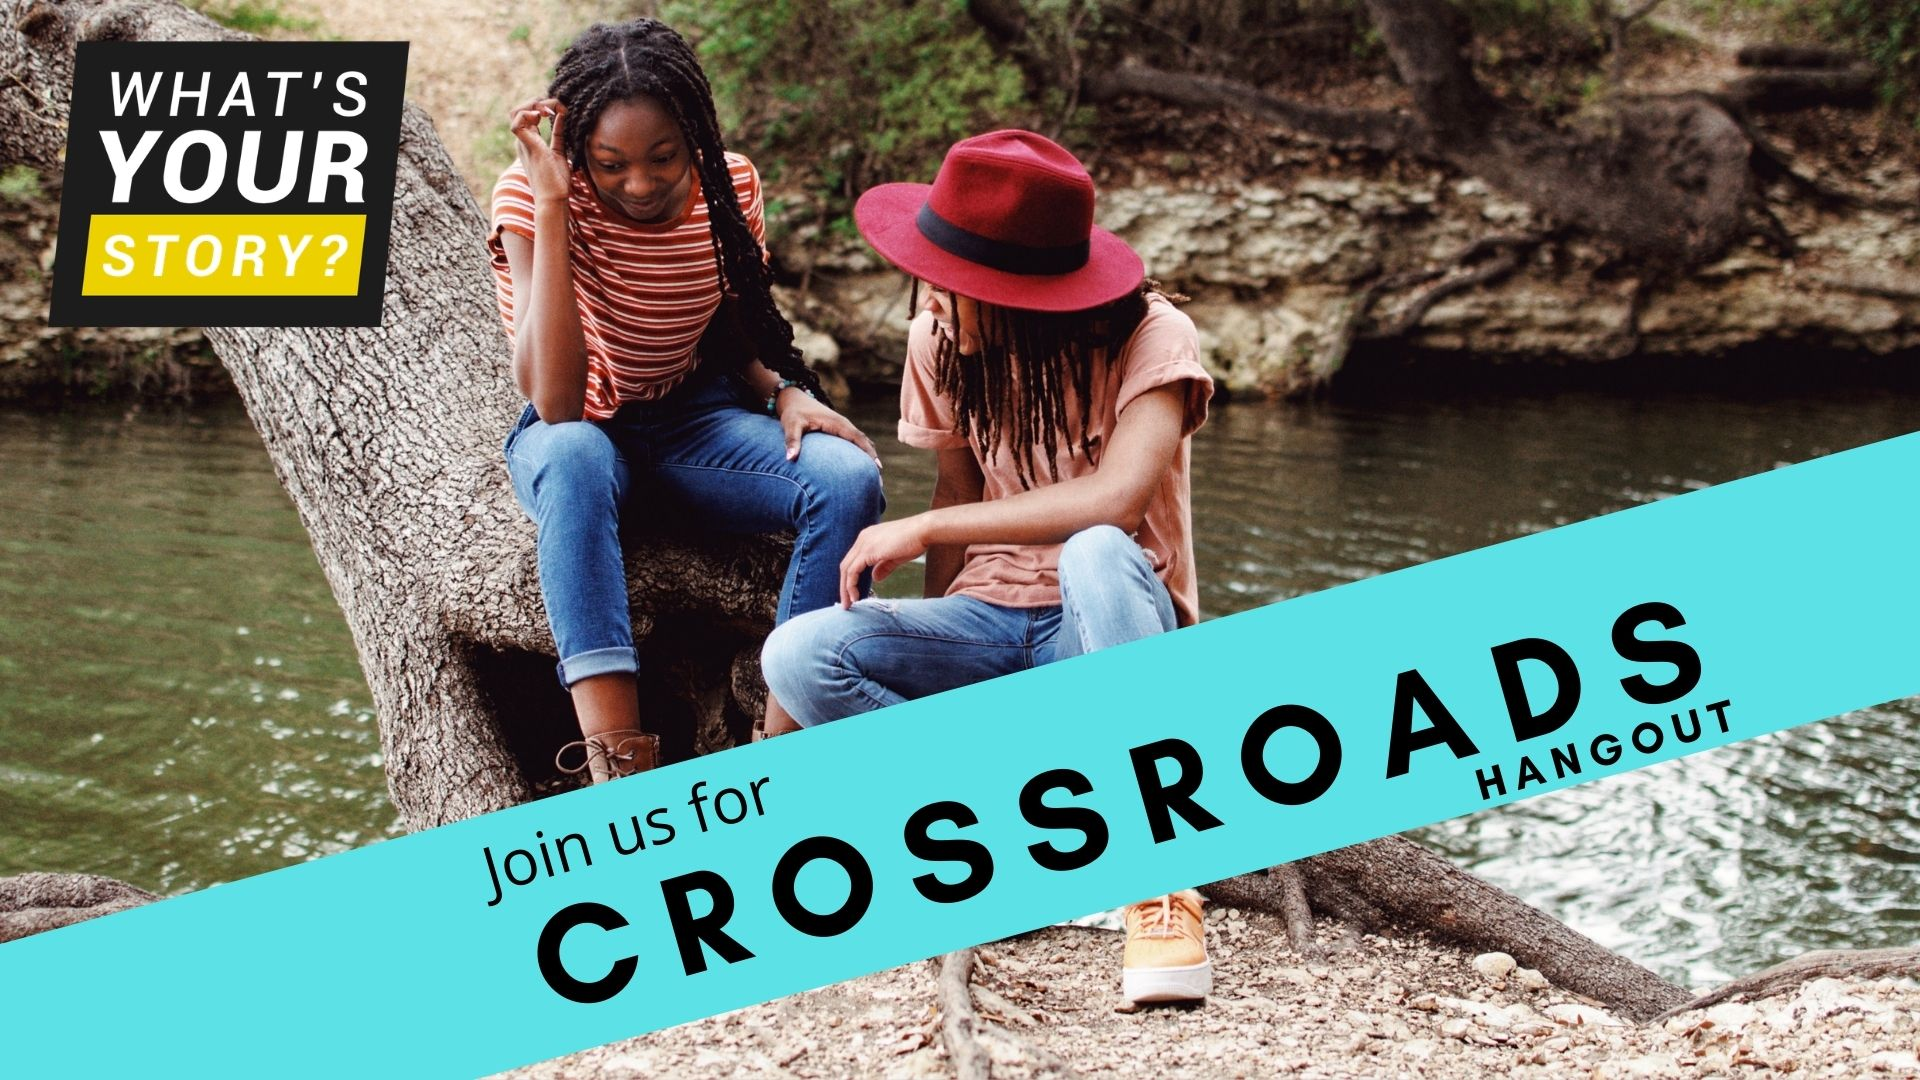 Cross Roads Whats Your Story Website Image